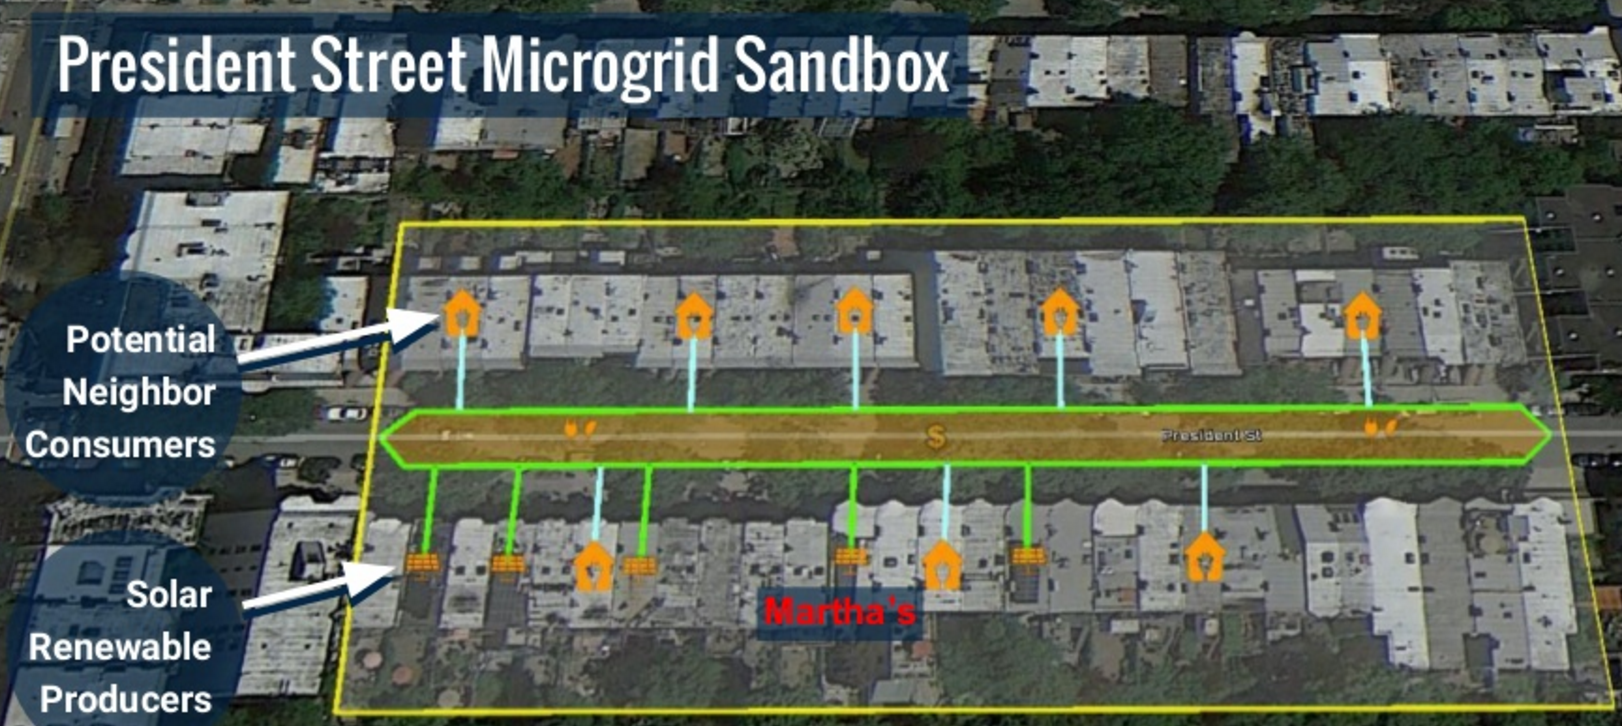 ... based Microgrid Tests P2P Energy Trading in Brooklyn - Microgrid Media